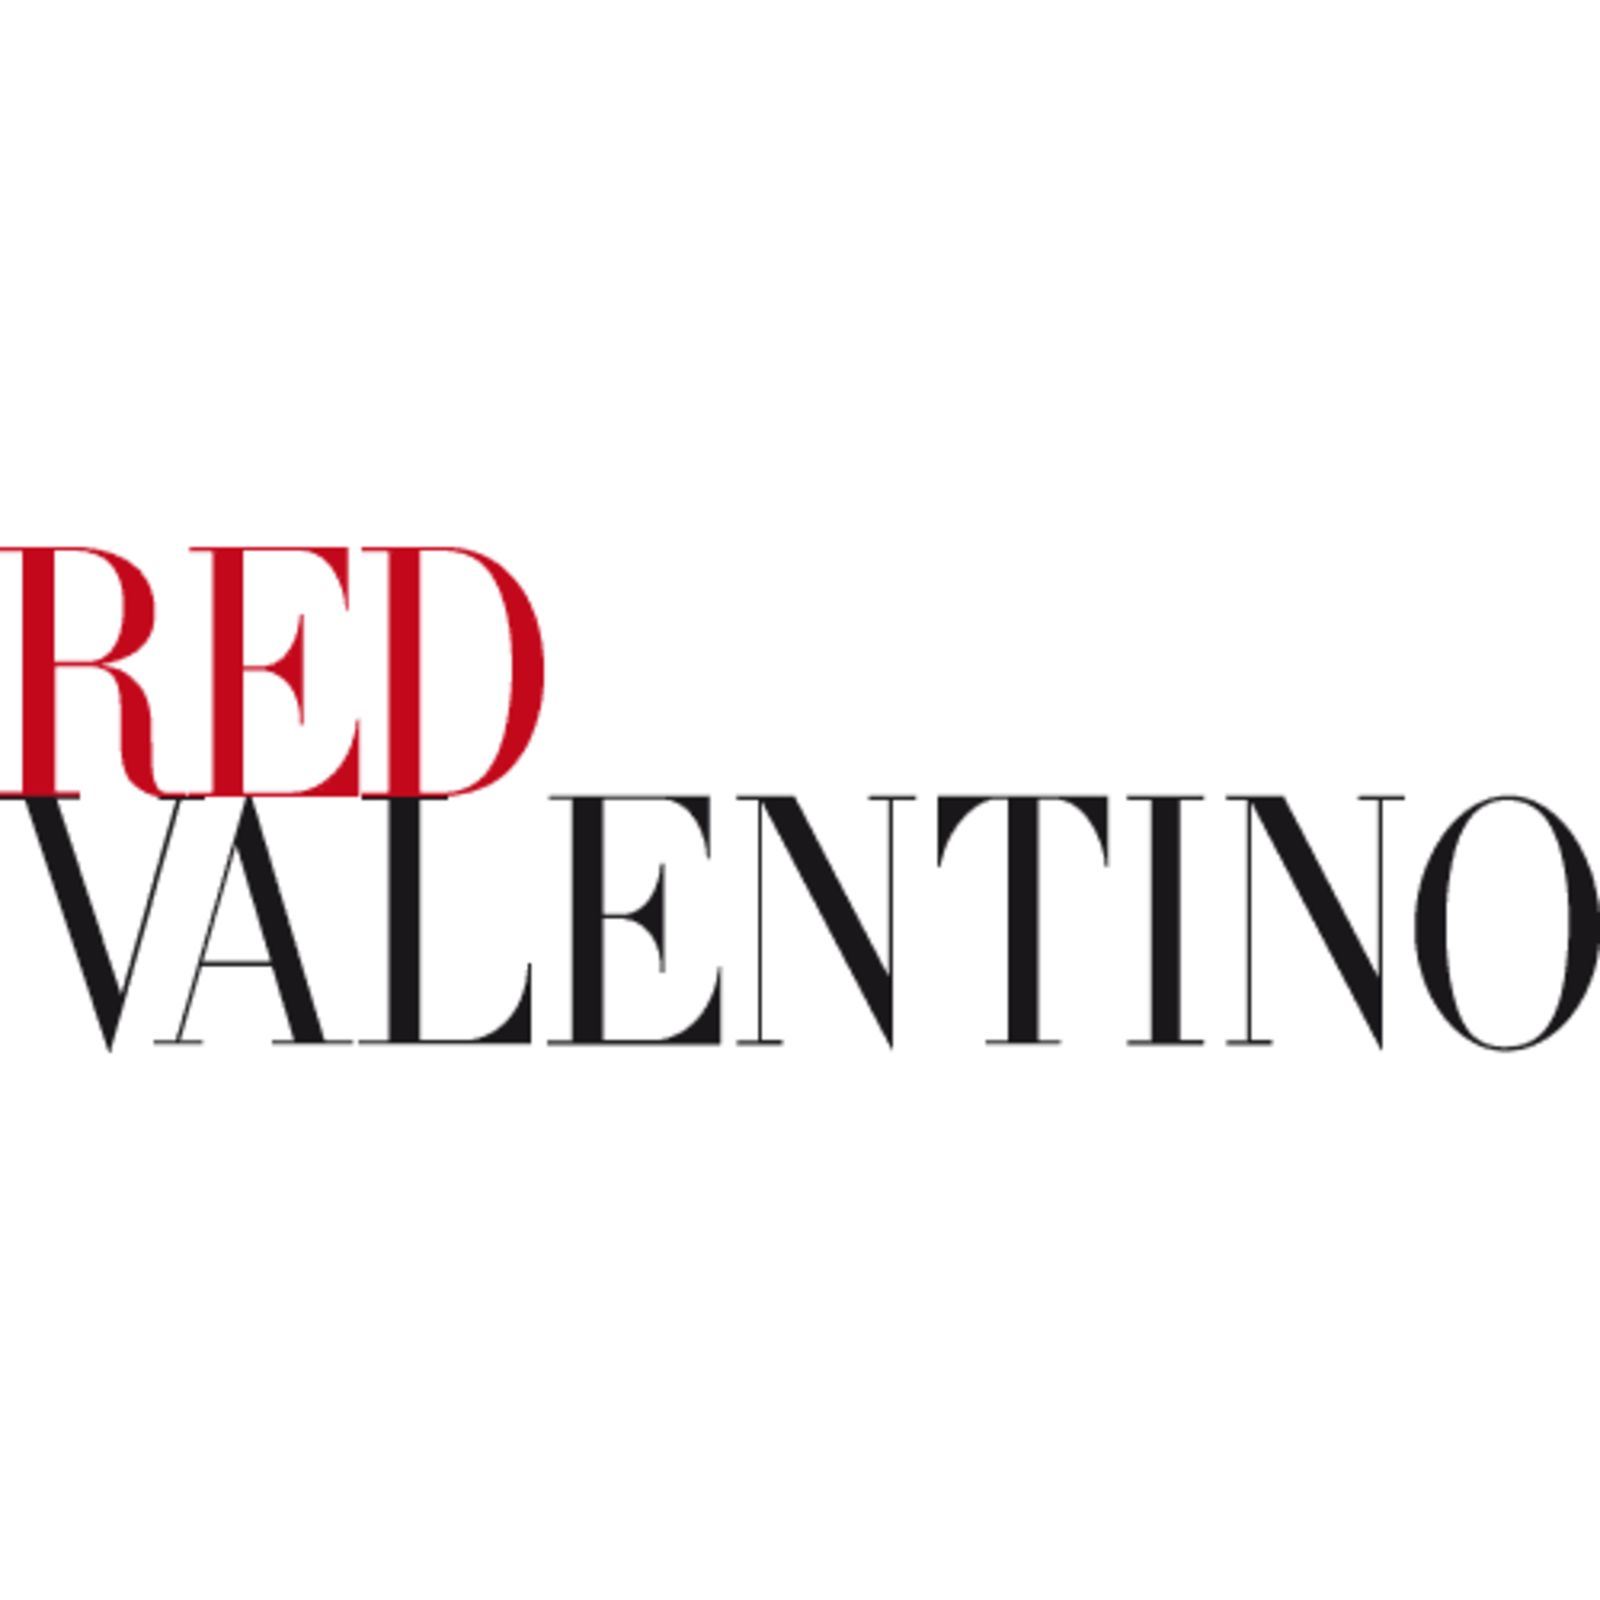 RED VALENTINO (Image 1)